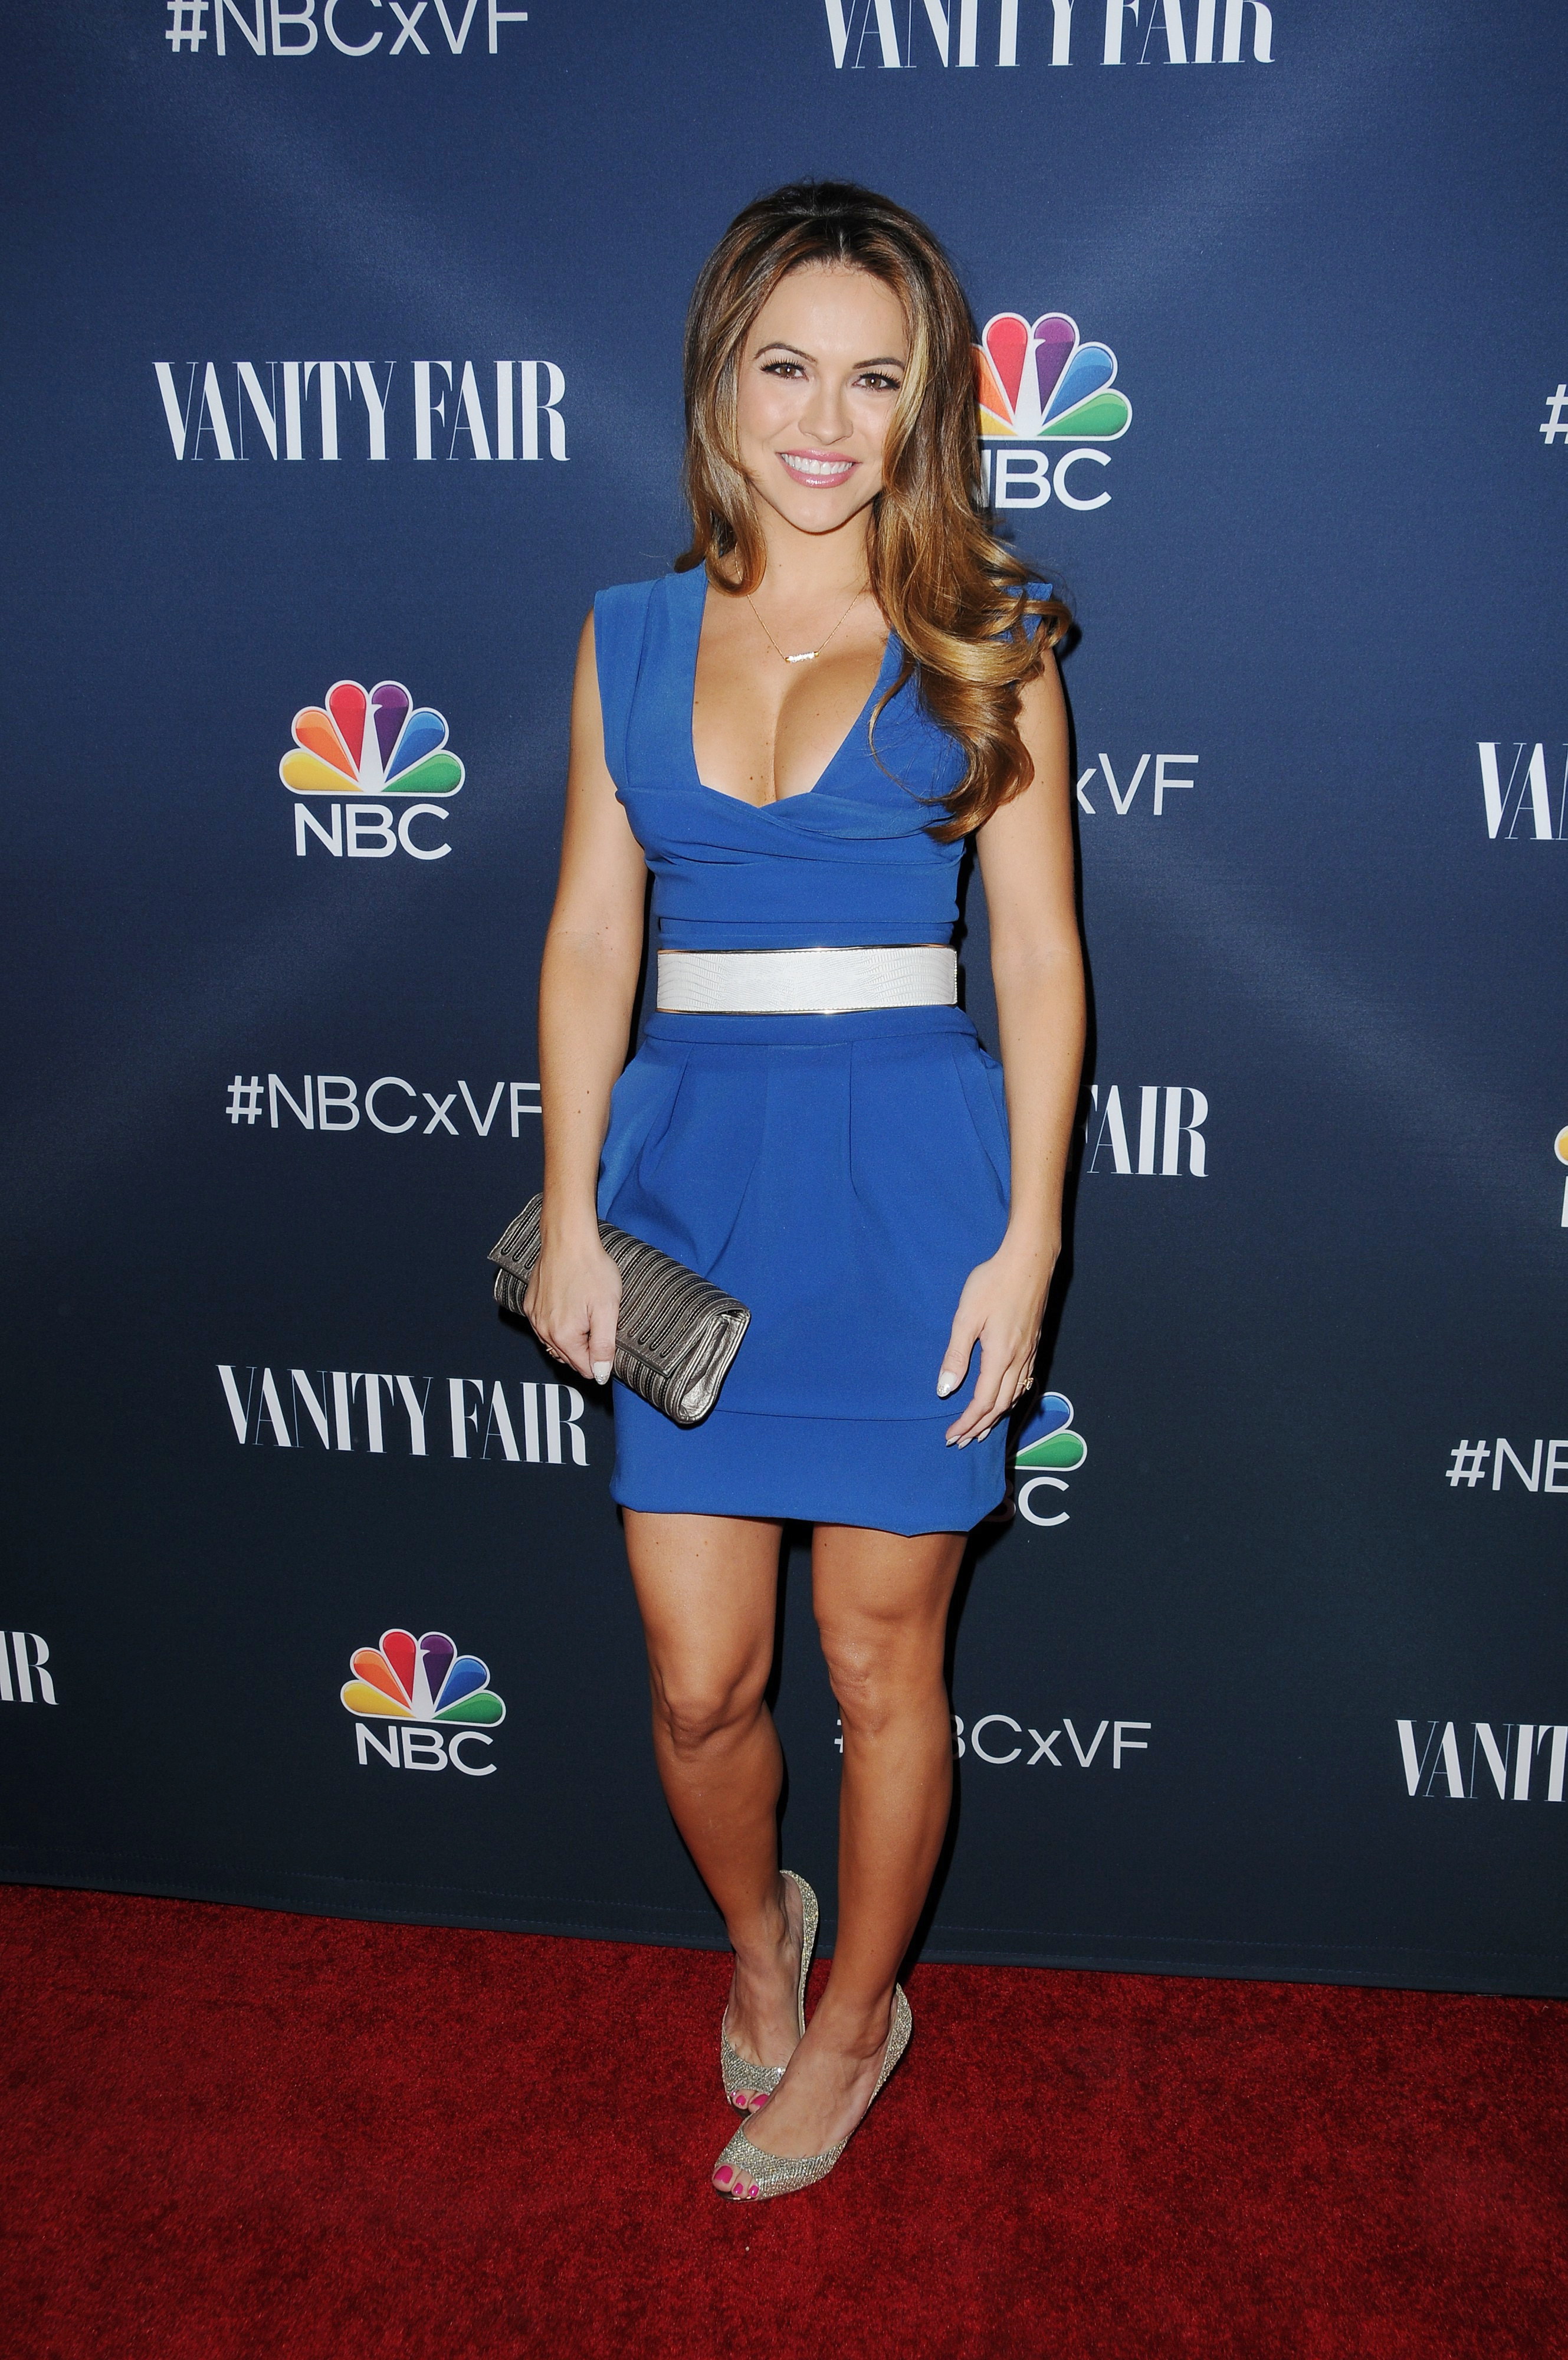 Chrishell Stause Hot in Blue